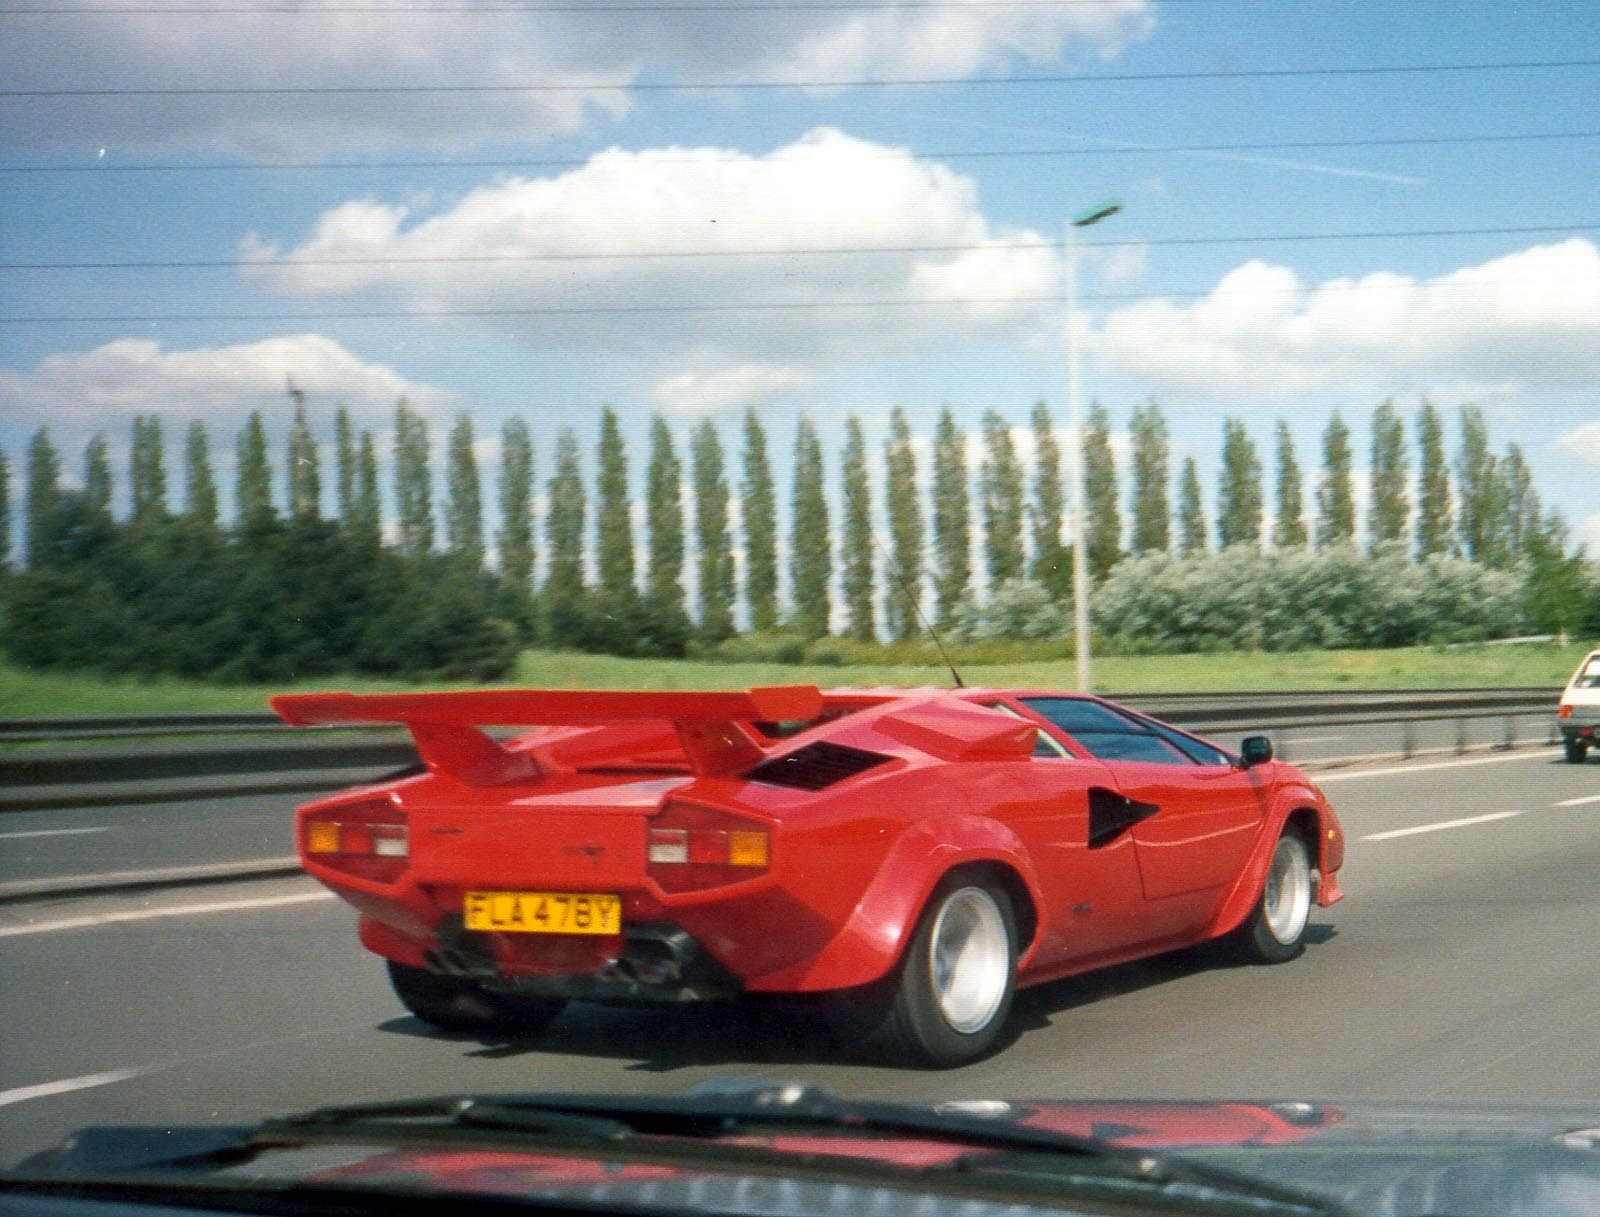 60225_countach_red_122_234lo.jpg